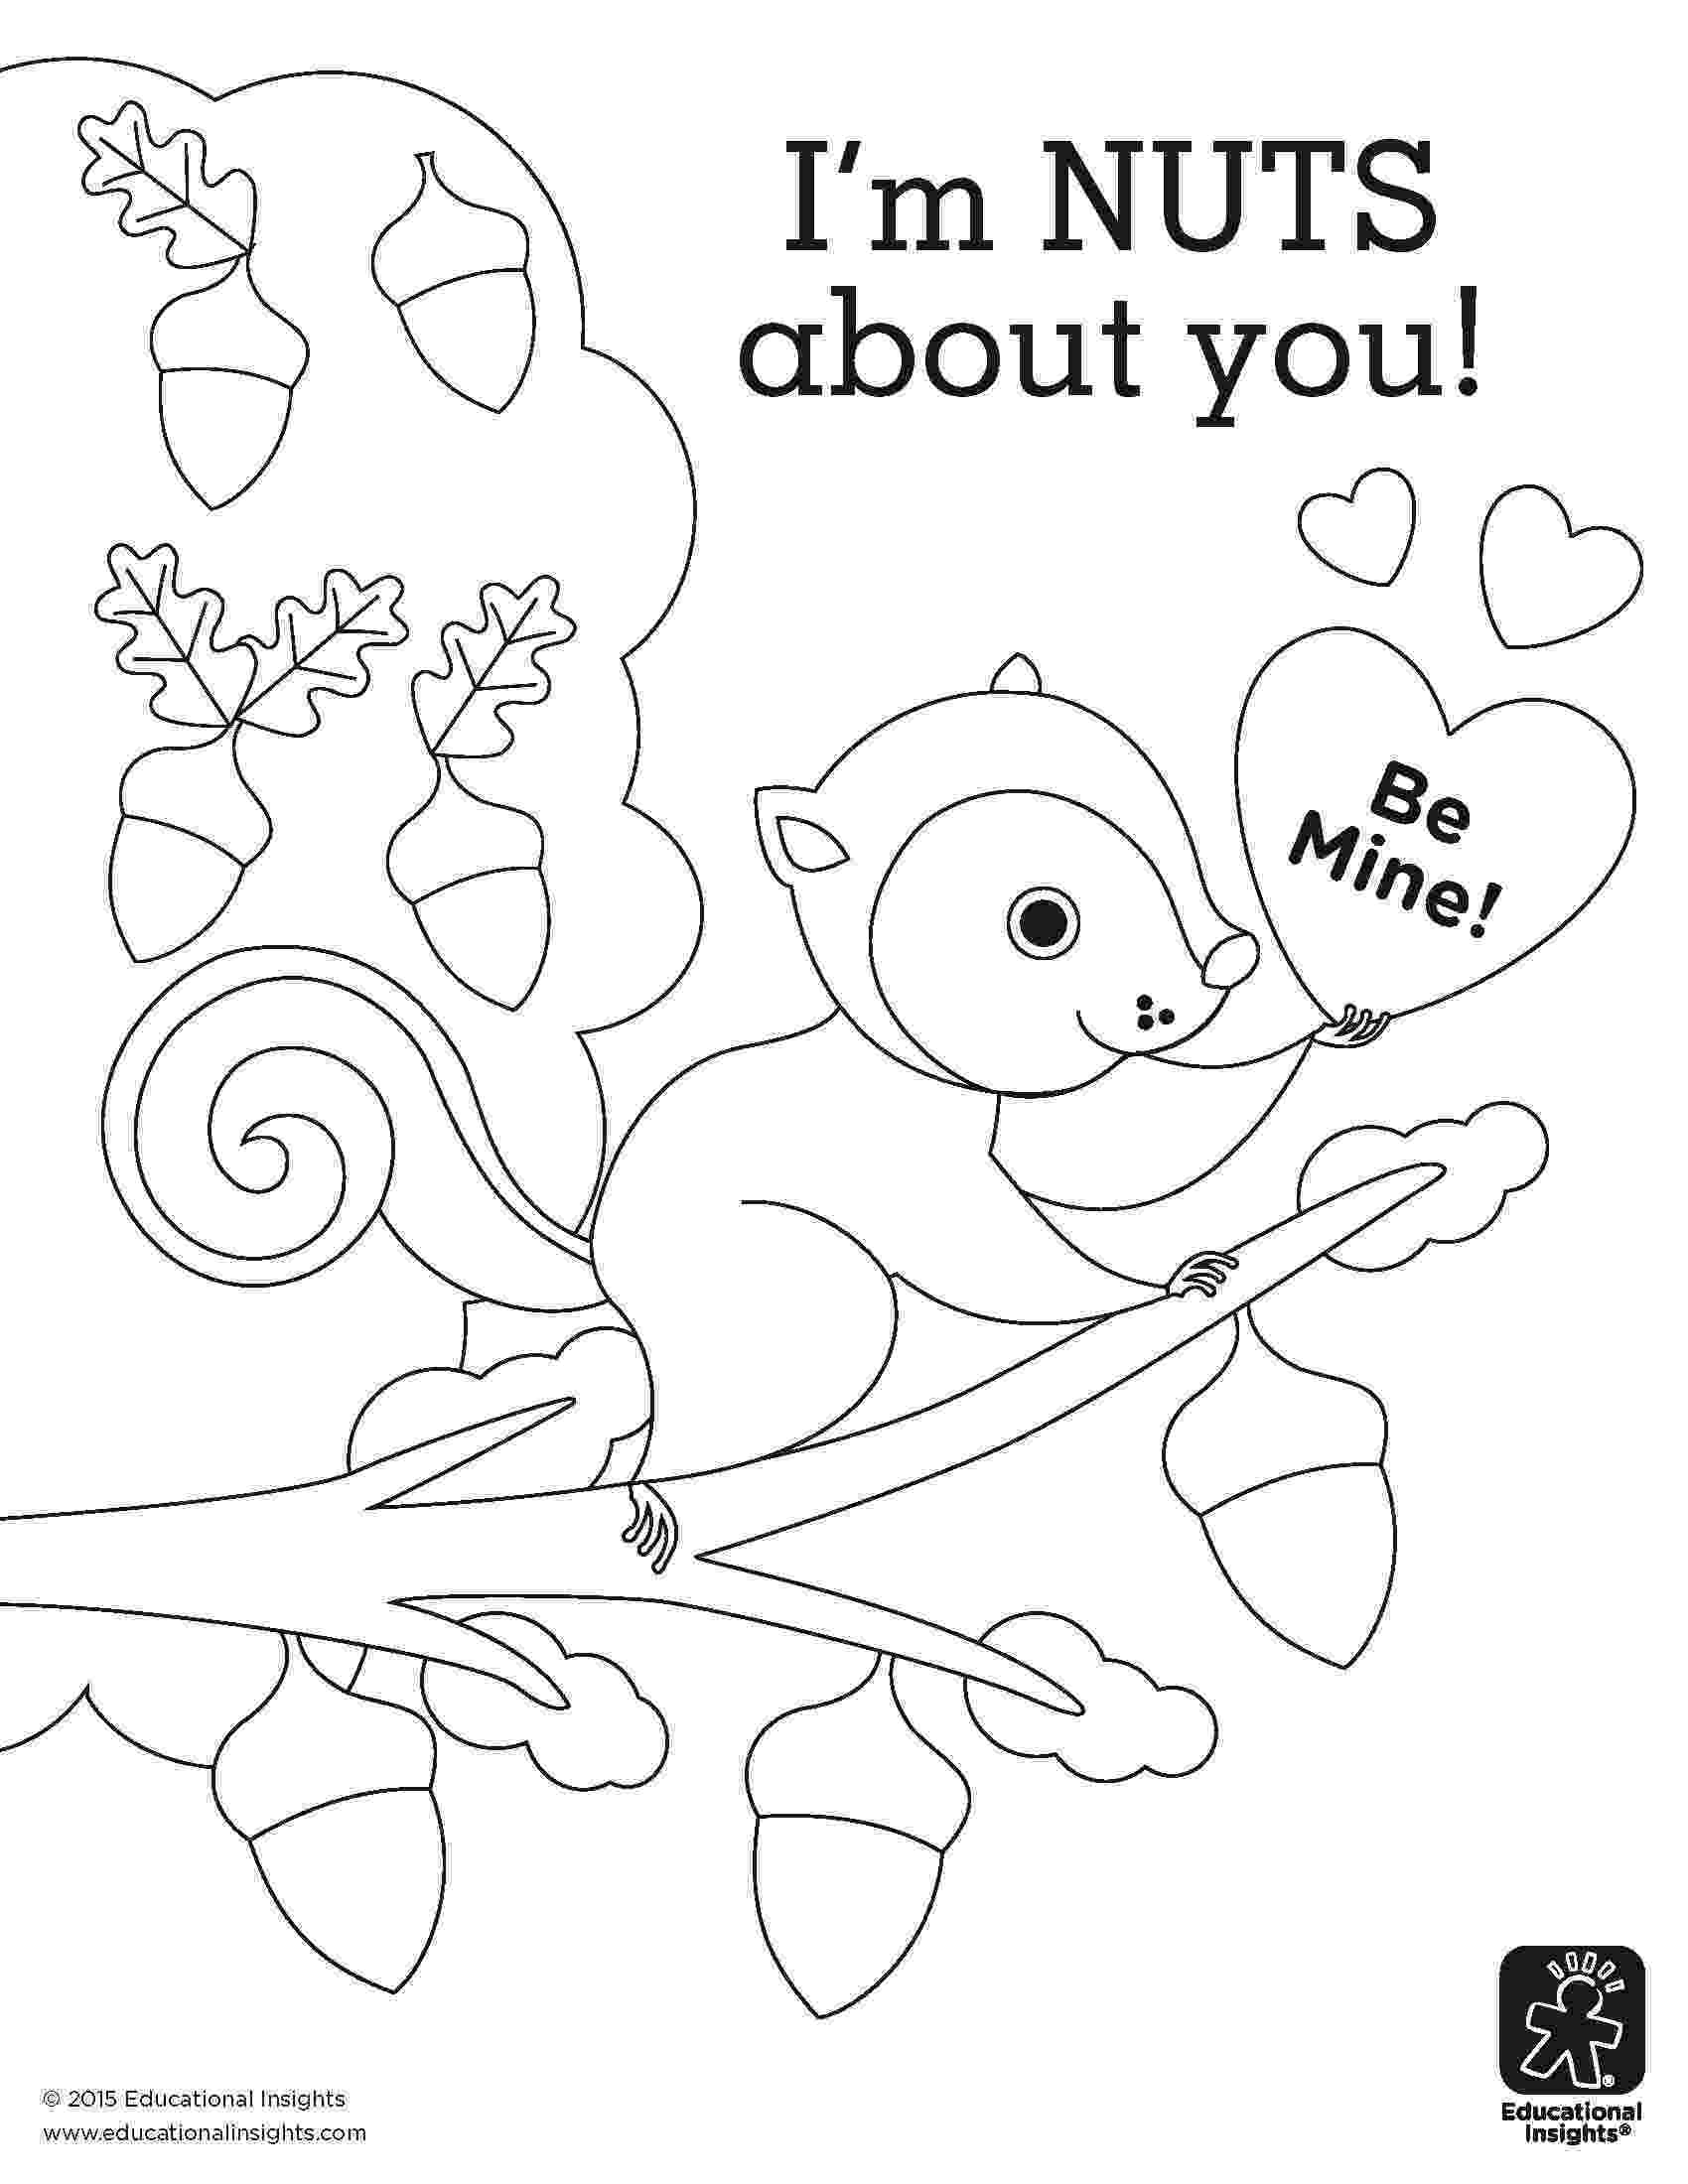 nuts coloring pages happy squirrel with nuts coloring page download free pages coloring nuts